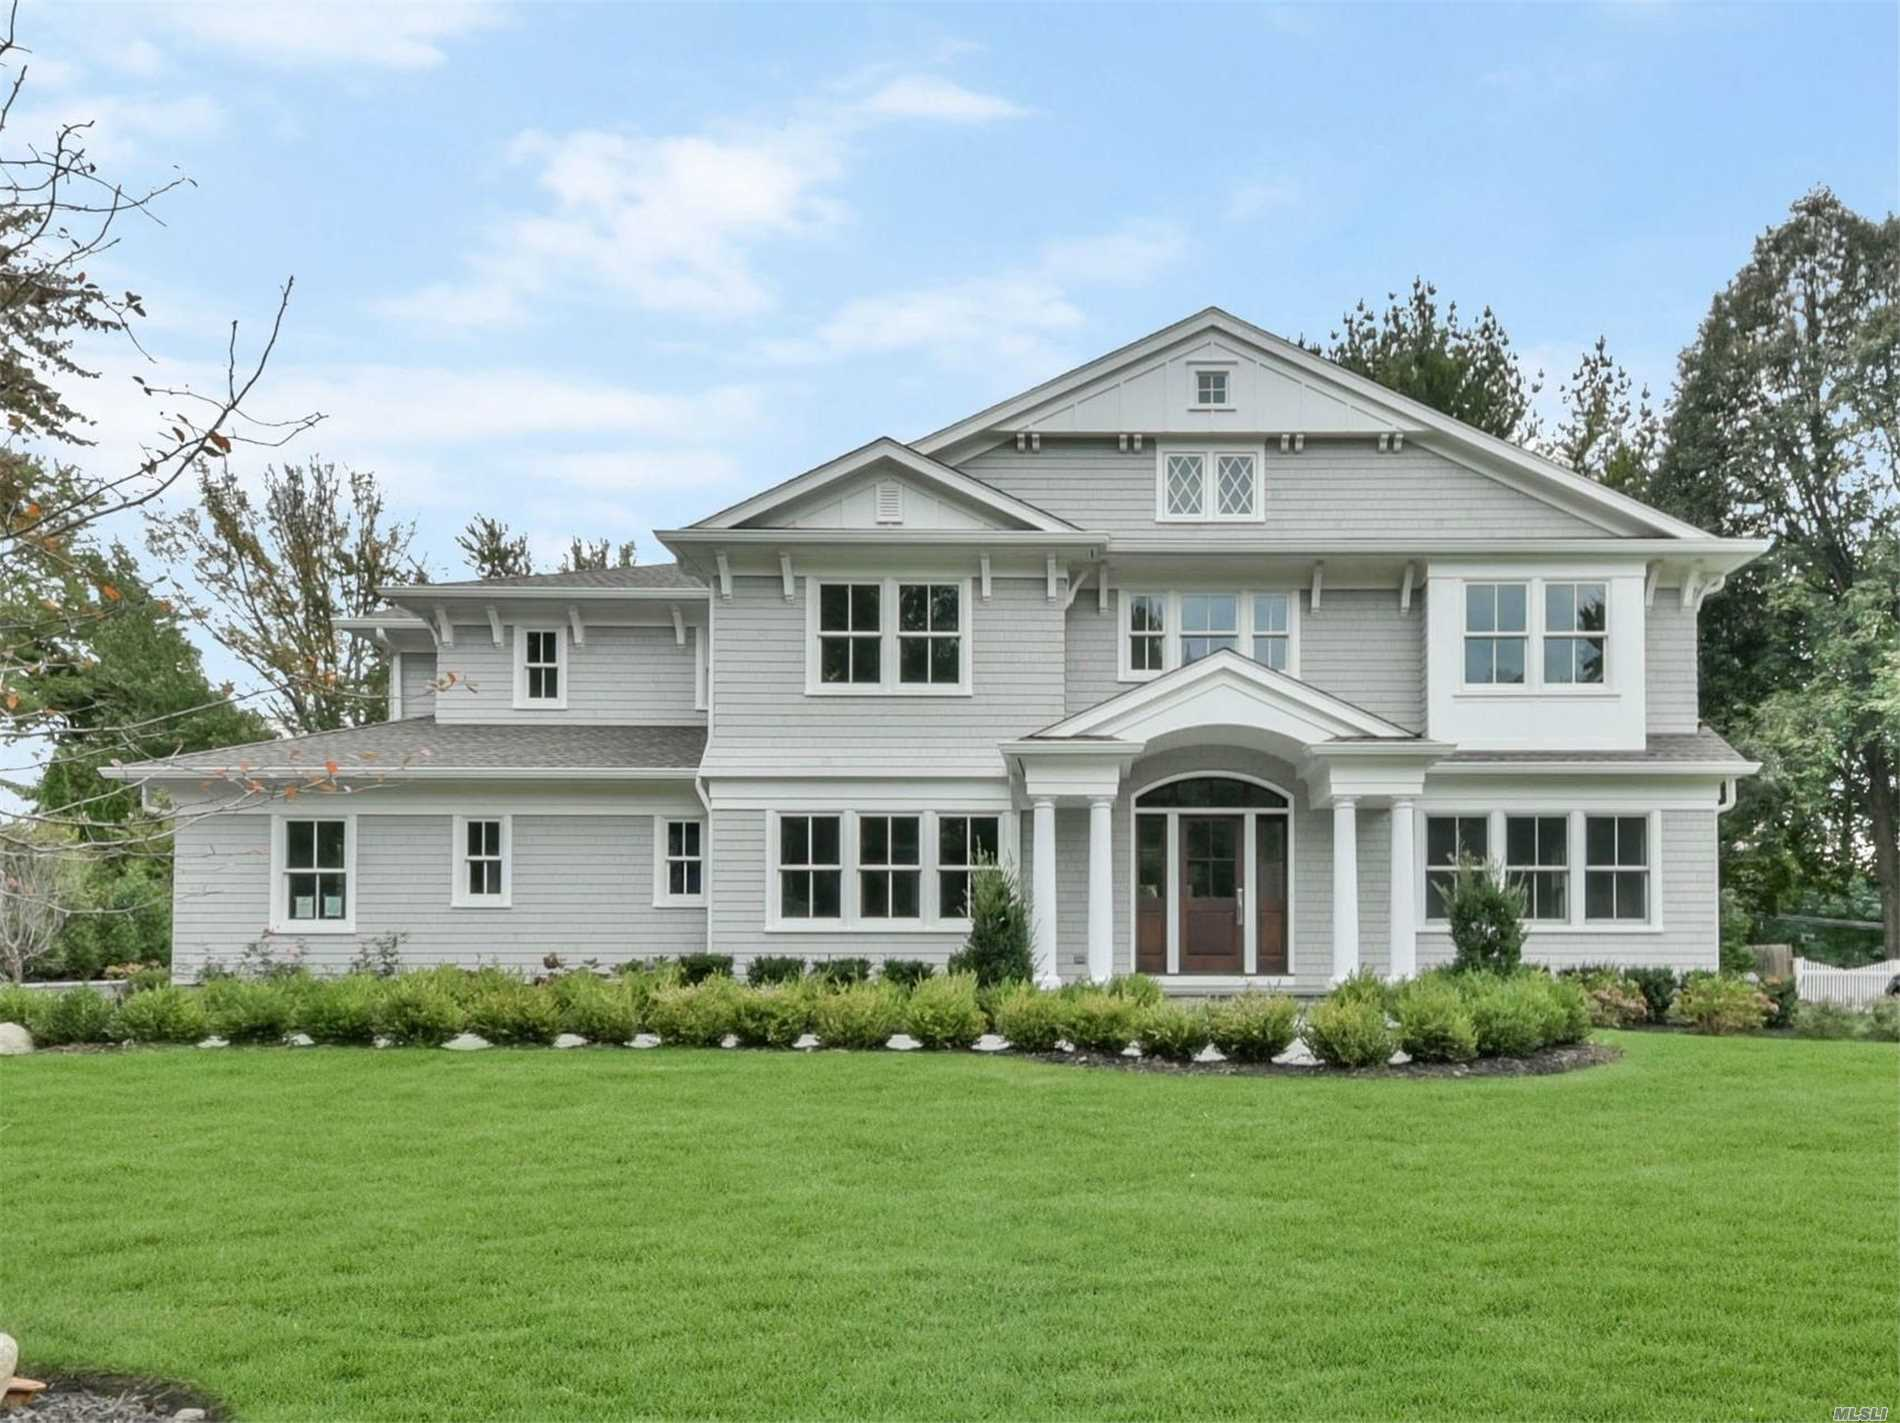 Brand New Construction Of 6, 068 Sqft. Hampton Style Colonial In Desirable Flower Hill. This 5 Bedroom 4.5 Bath Fabulous Home On Park Like Flat Oversized Property That Is Perfect For A Pool. Stunning State Of The Art White Kitchen That Leads To A Bright And Airy Family Room With Coffered Ceilings, Fireplace, And French Doors. Stately Master Suite With Soaring Ceilings And Gas Fireplace. Top Of The Line Finishes. Port Washington School District. Sticker To Port Washington Train.